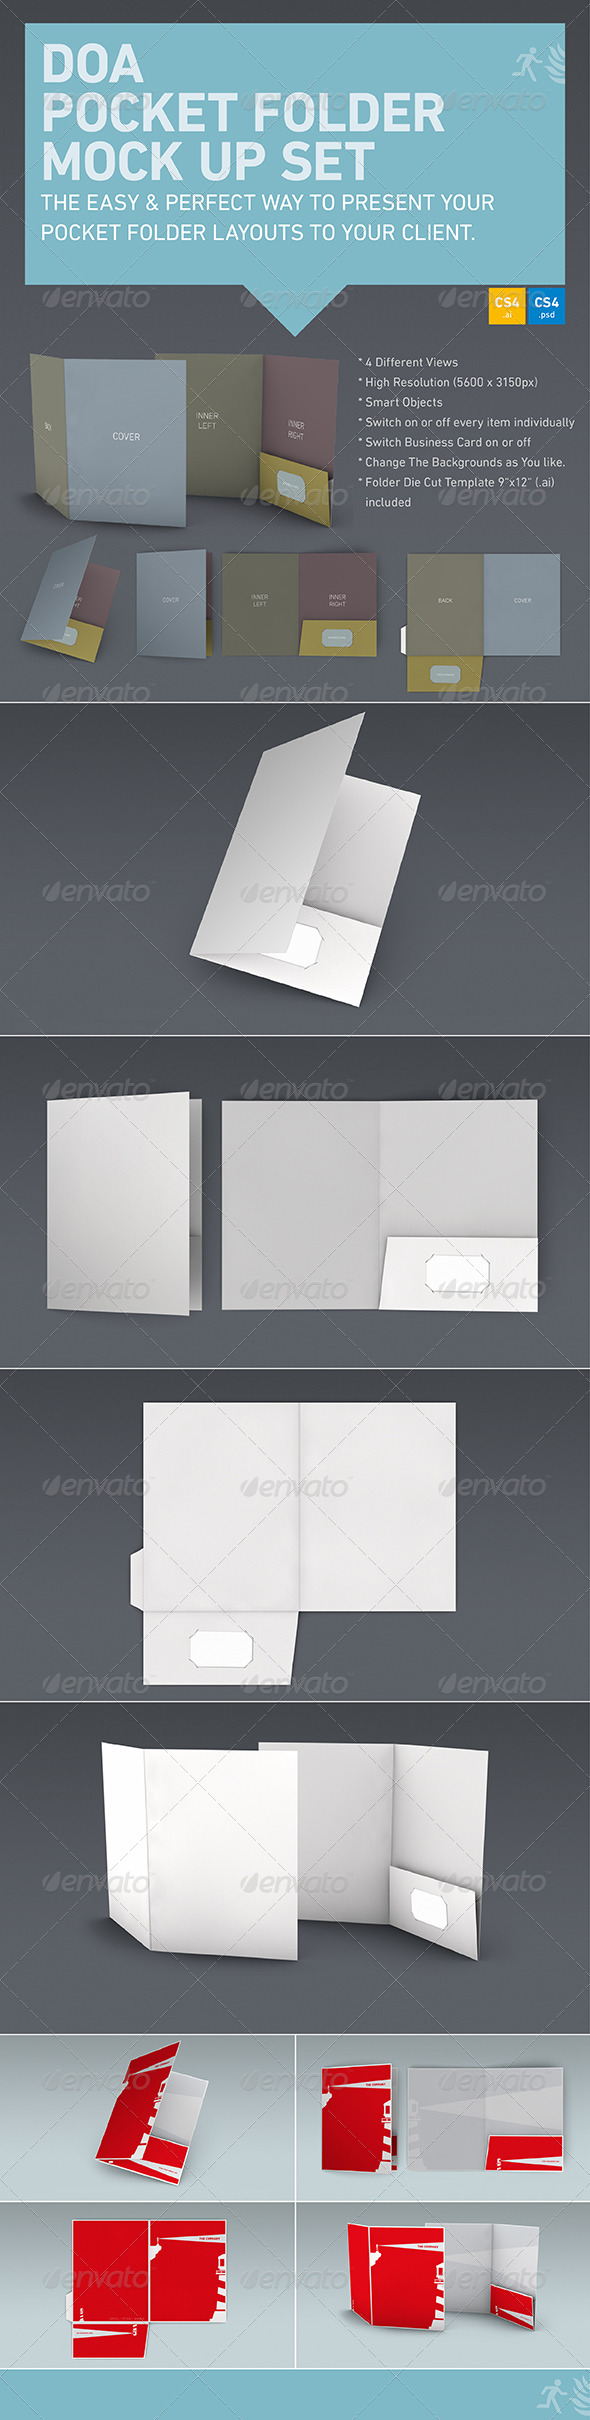 GraphicRiver DOA Pocket Folder Mock Up Set 5256496